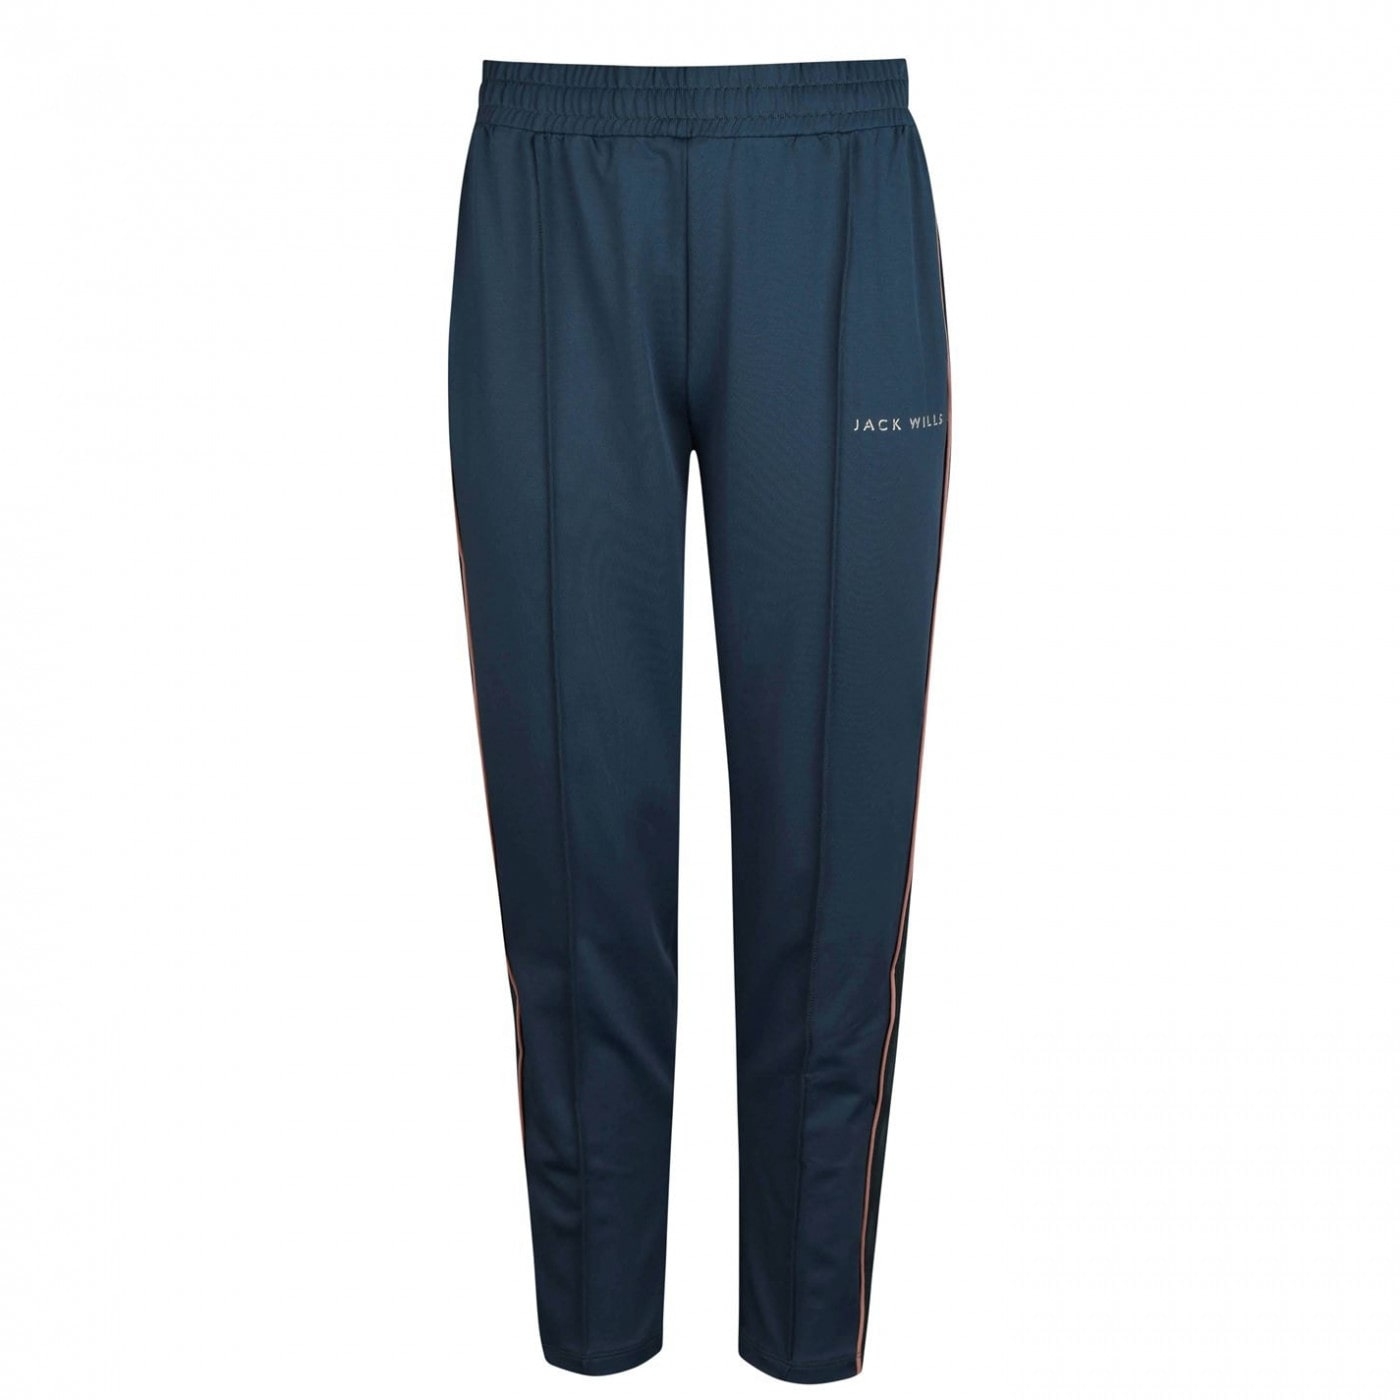 Jack Wills Stanedge Tracksuit Bottoms